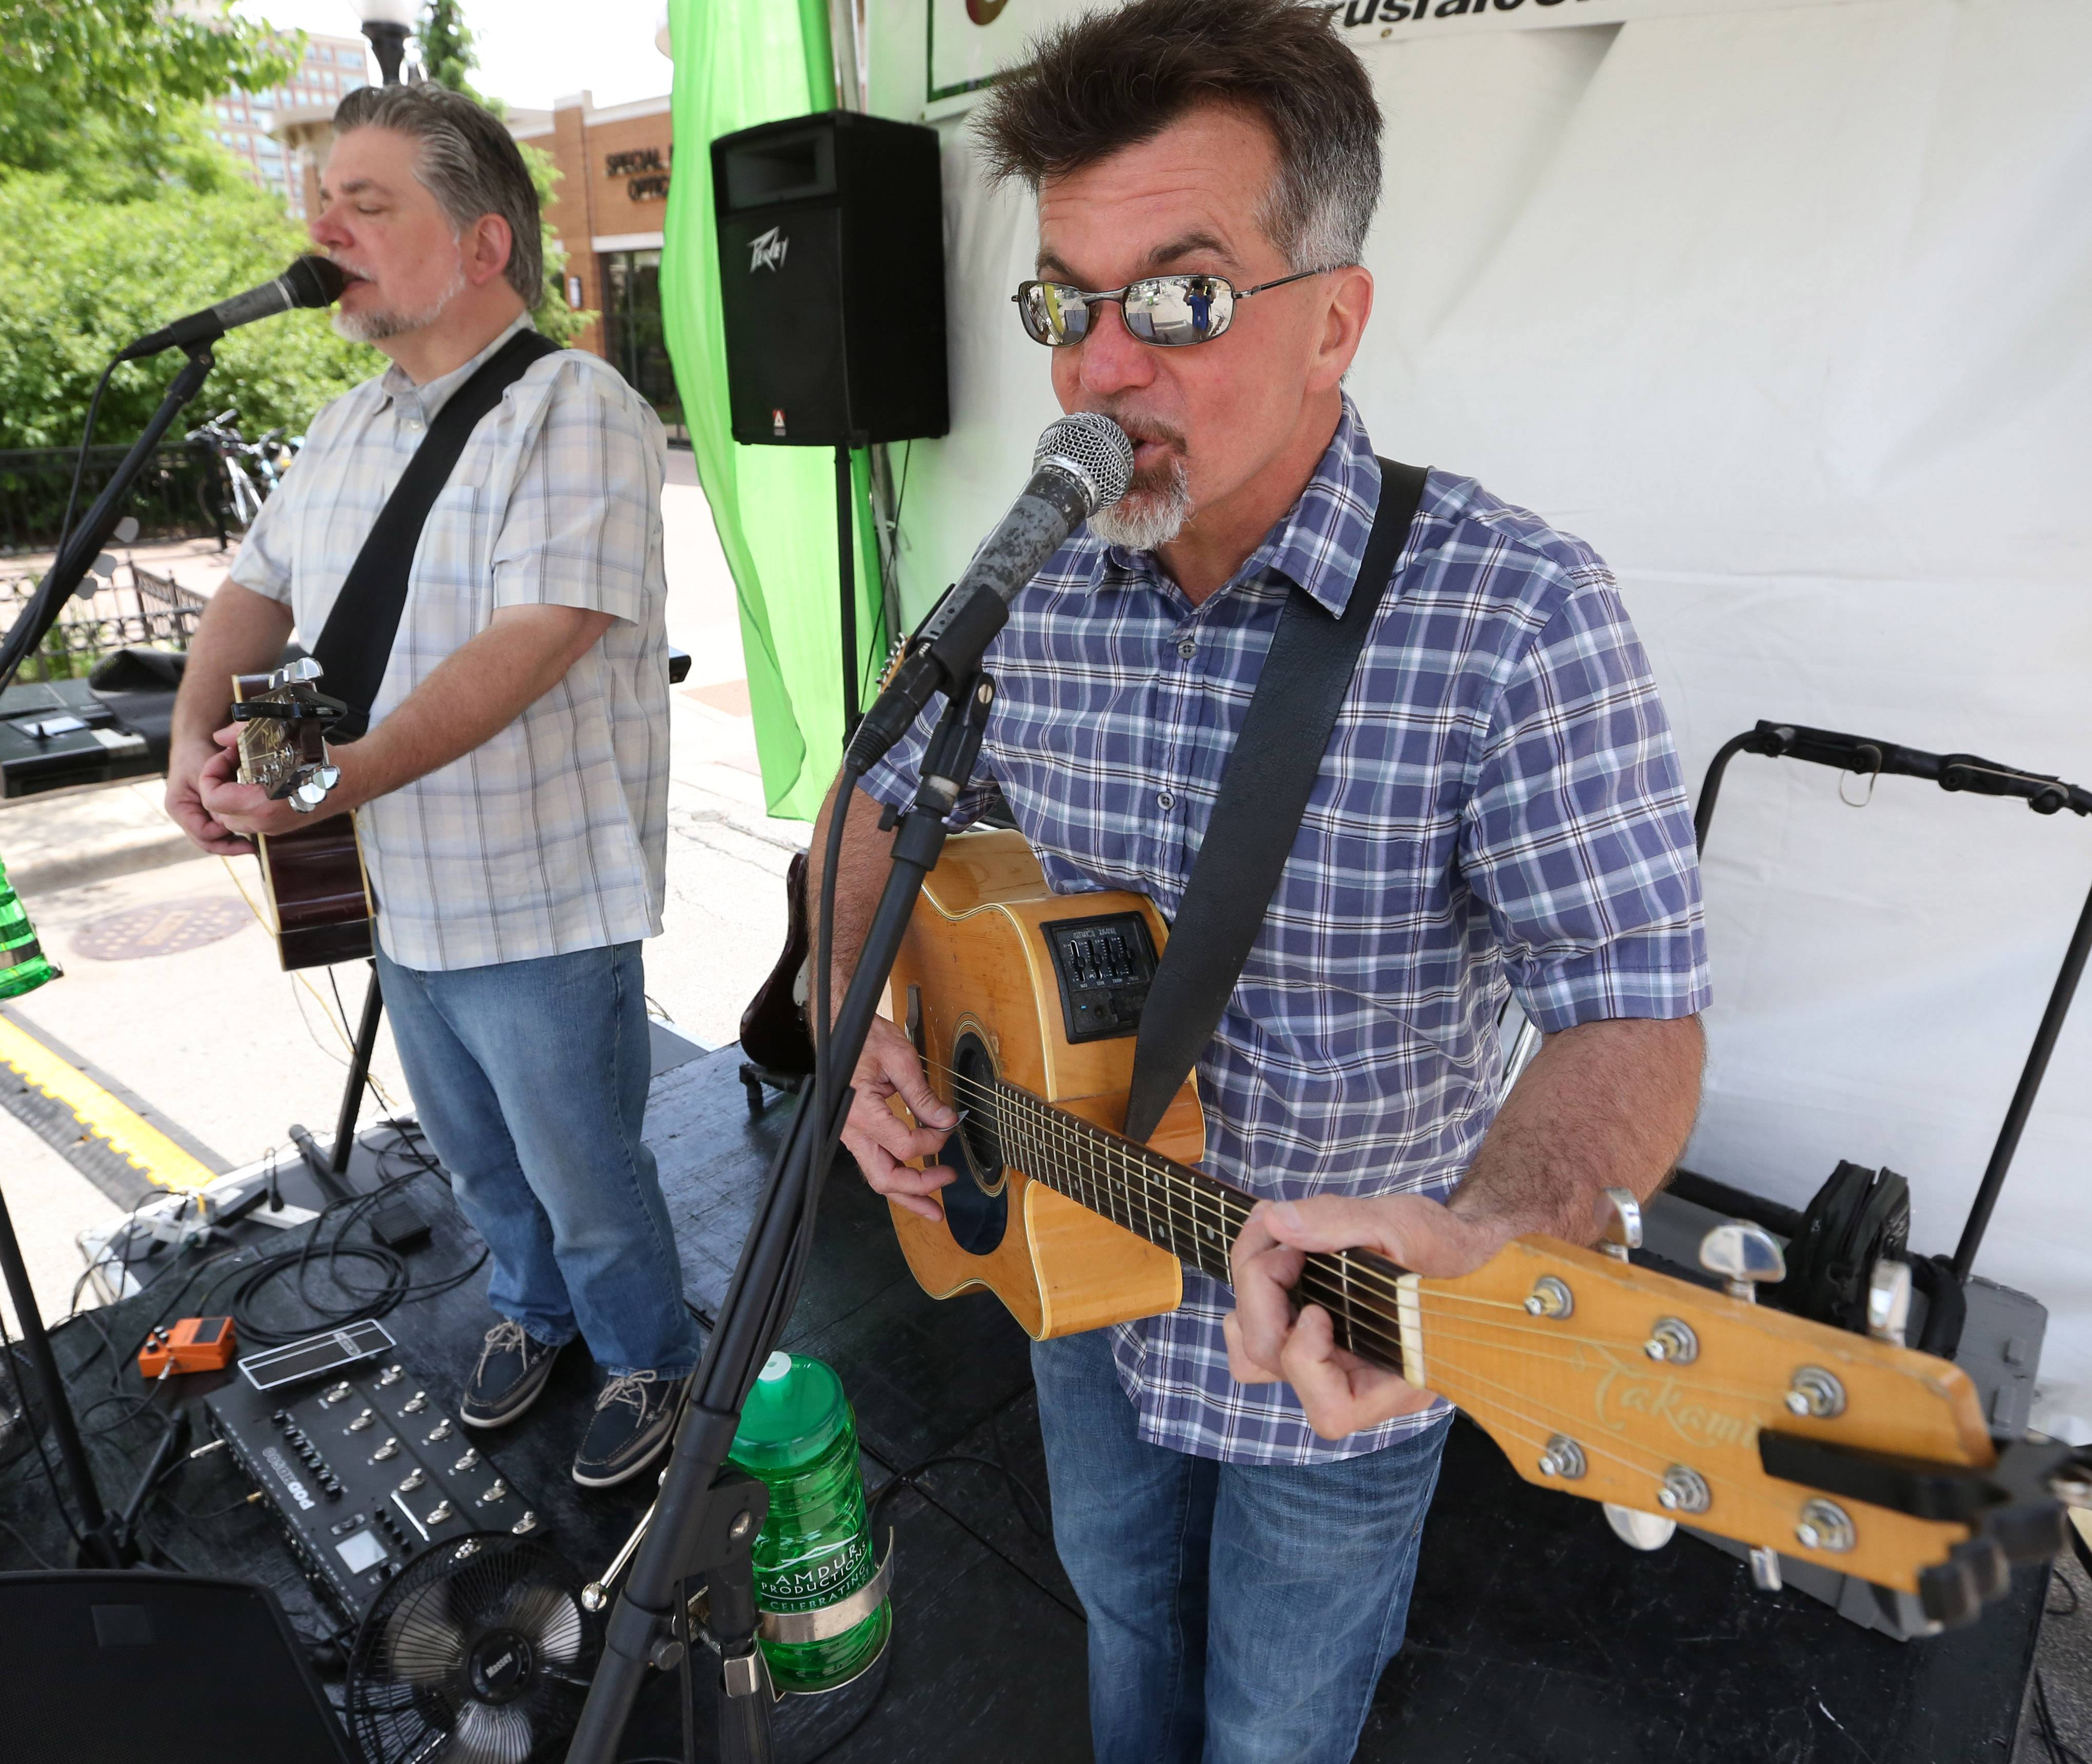 Scott Anderson, right, and Dave Granger play classic rock music at the 11th annual Promenade of Art in Arlington Heights on Saturday. The art fest features the work of 130 juried artists.